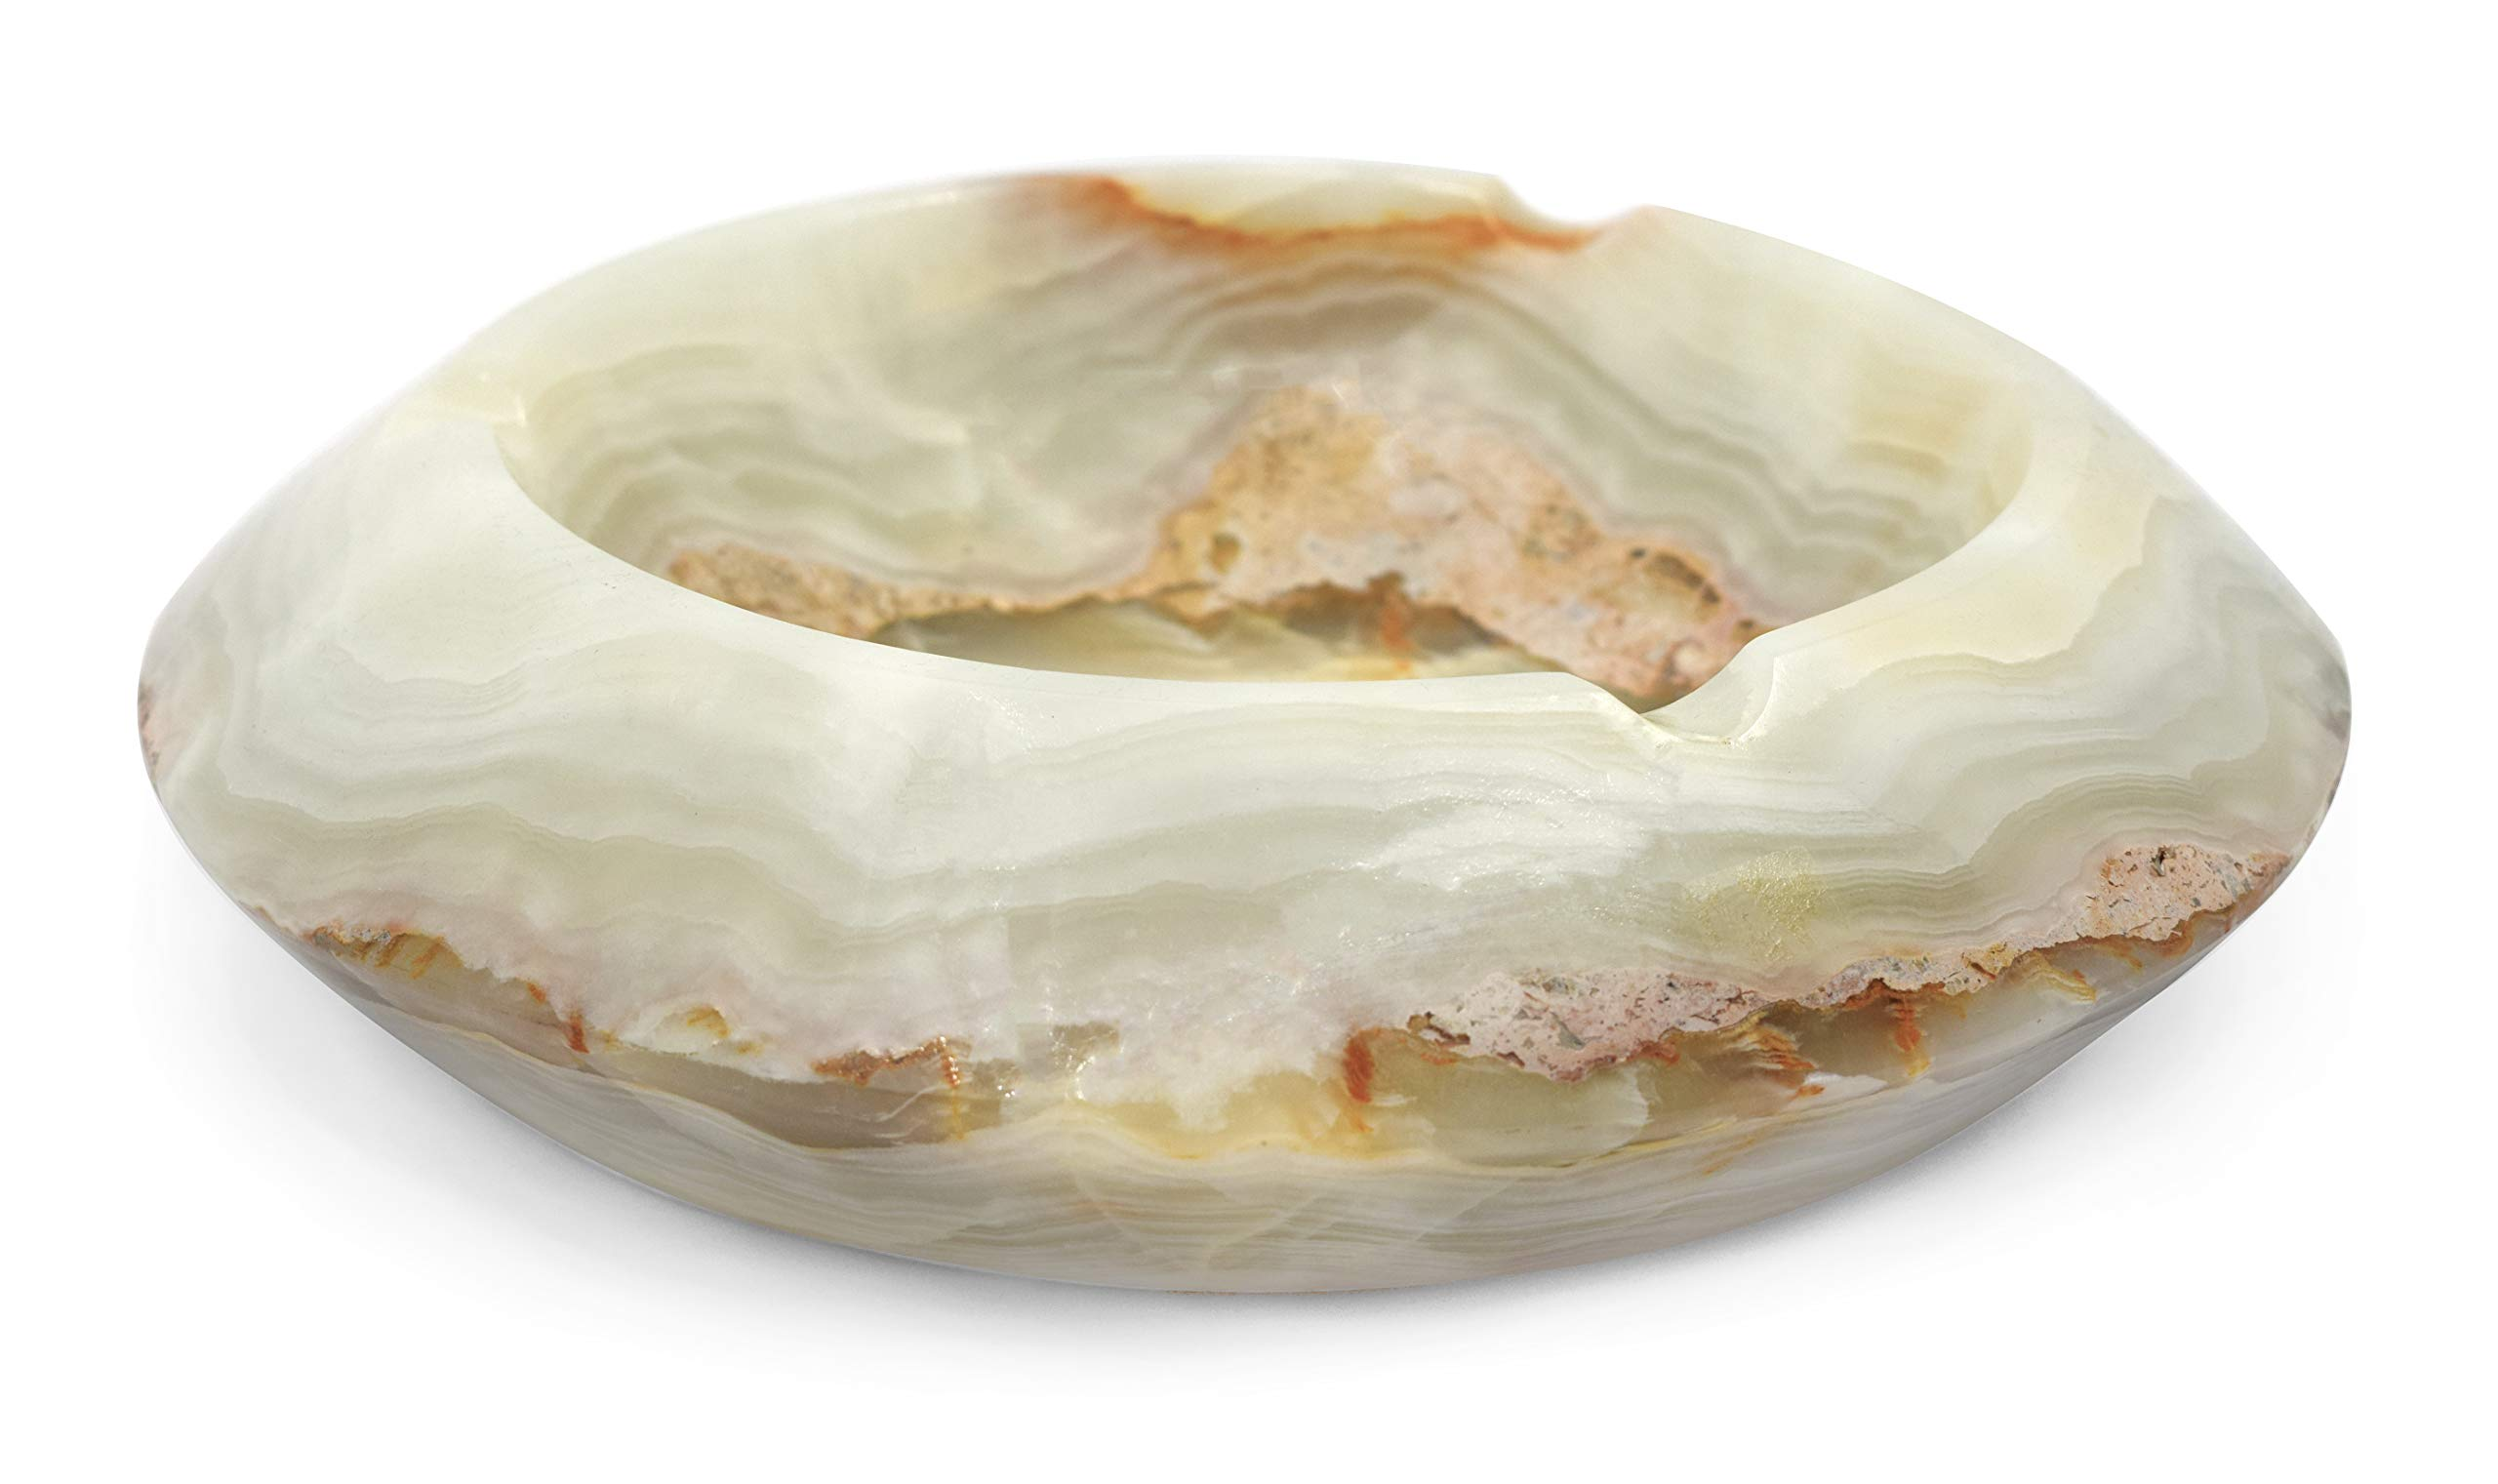 Misty Green Bowl Ashtray, 2'' Tall, 8'' Long, 8'' Wide, (5.5lbs), Carved from Real North American Onyx Aragonite - The Artisan Mined Series by hBAR by hBARSCI